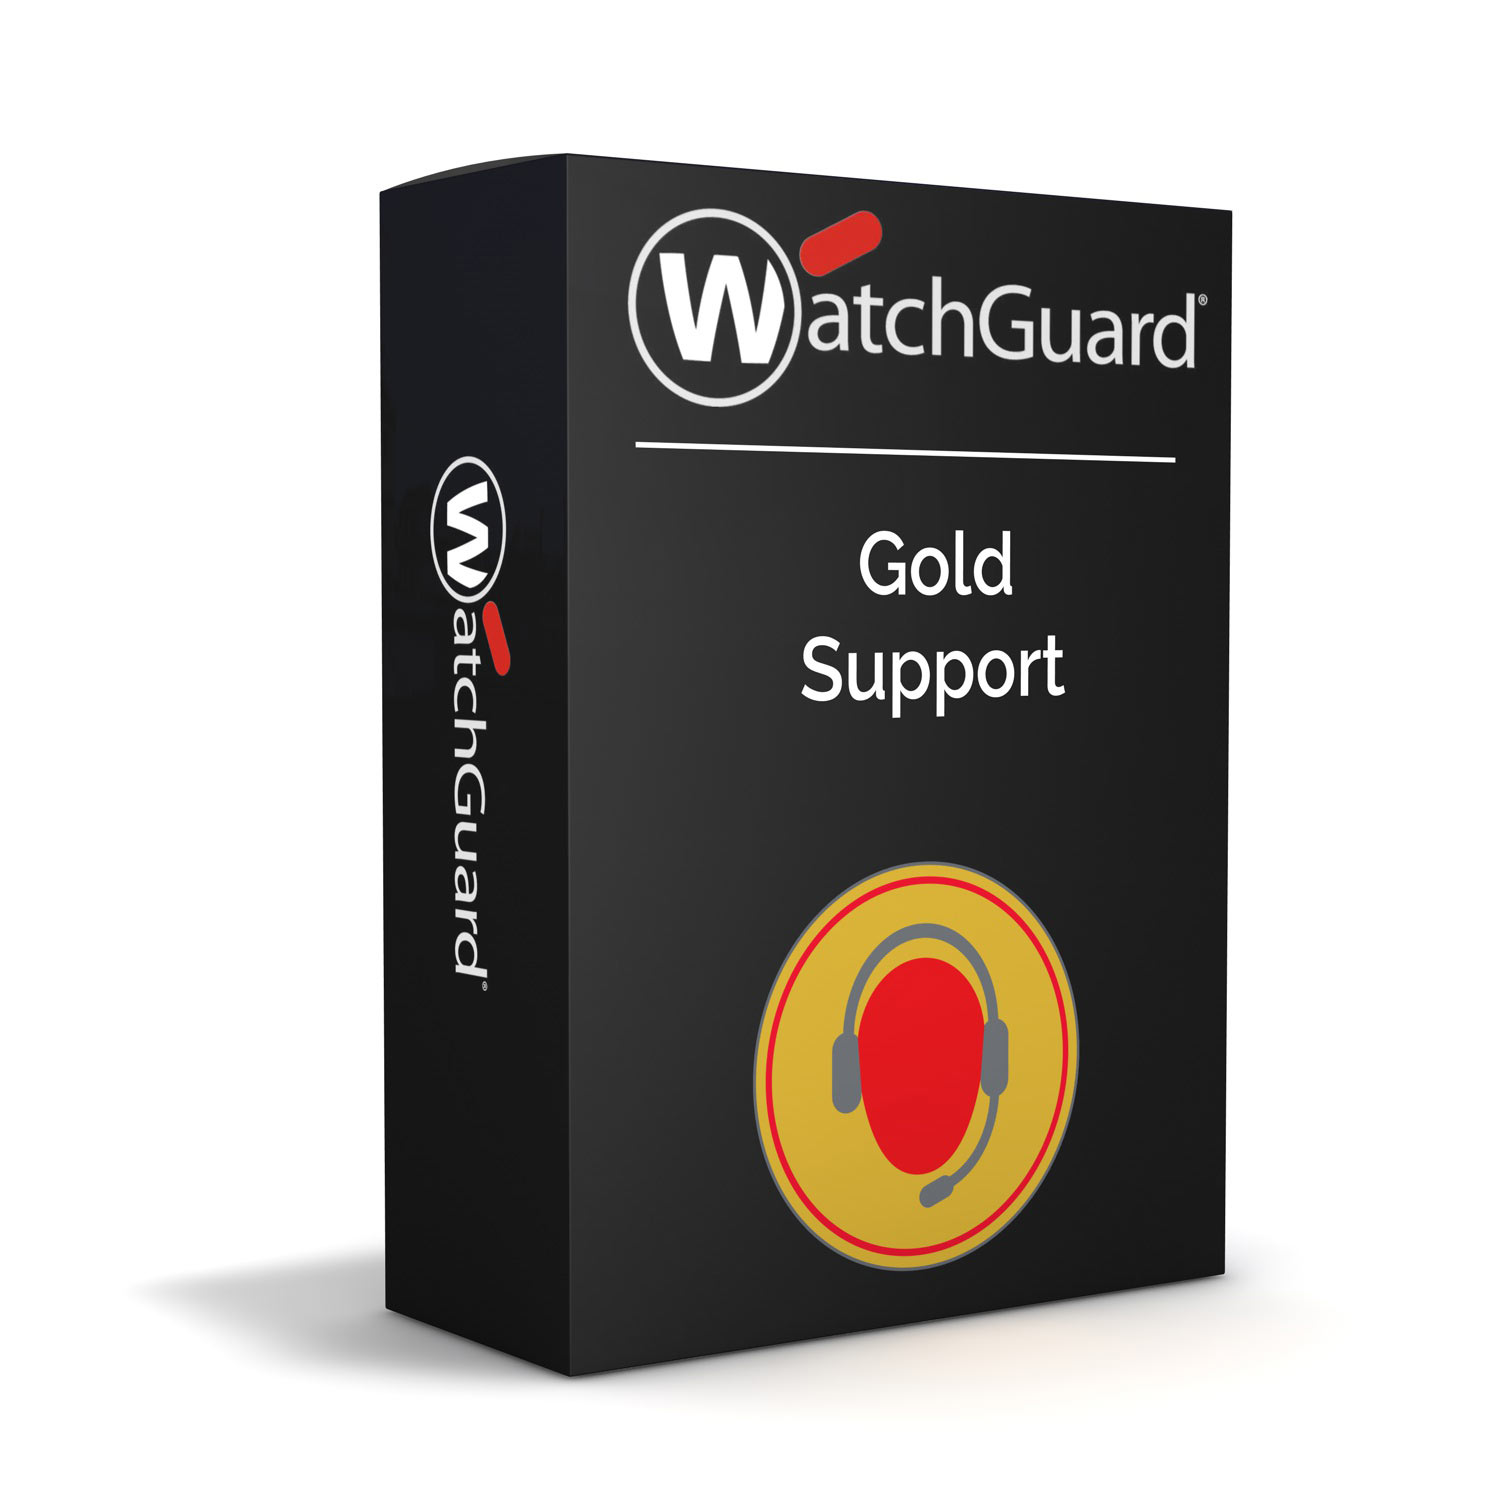 WatchGuard Gold Support Renewal/Upgrade 1-yr for Firebox T35-W